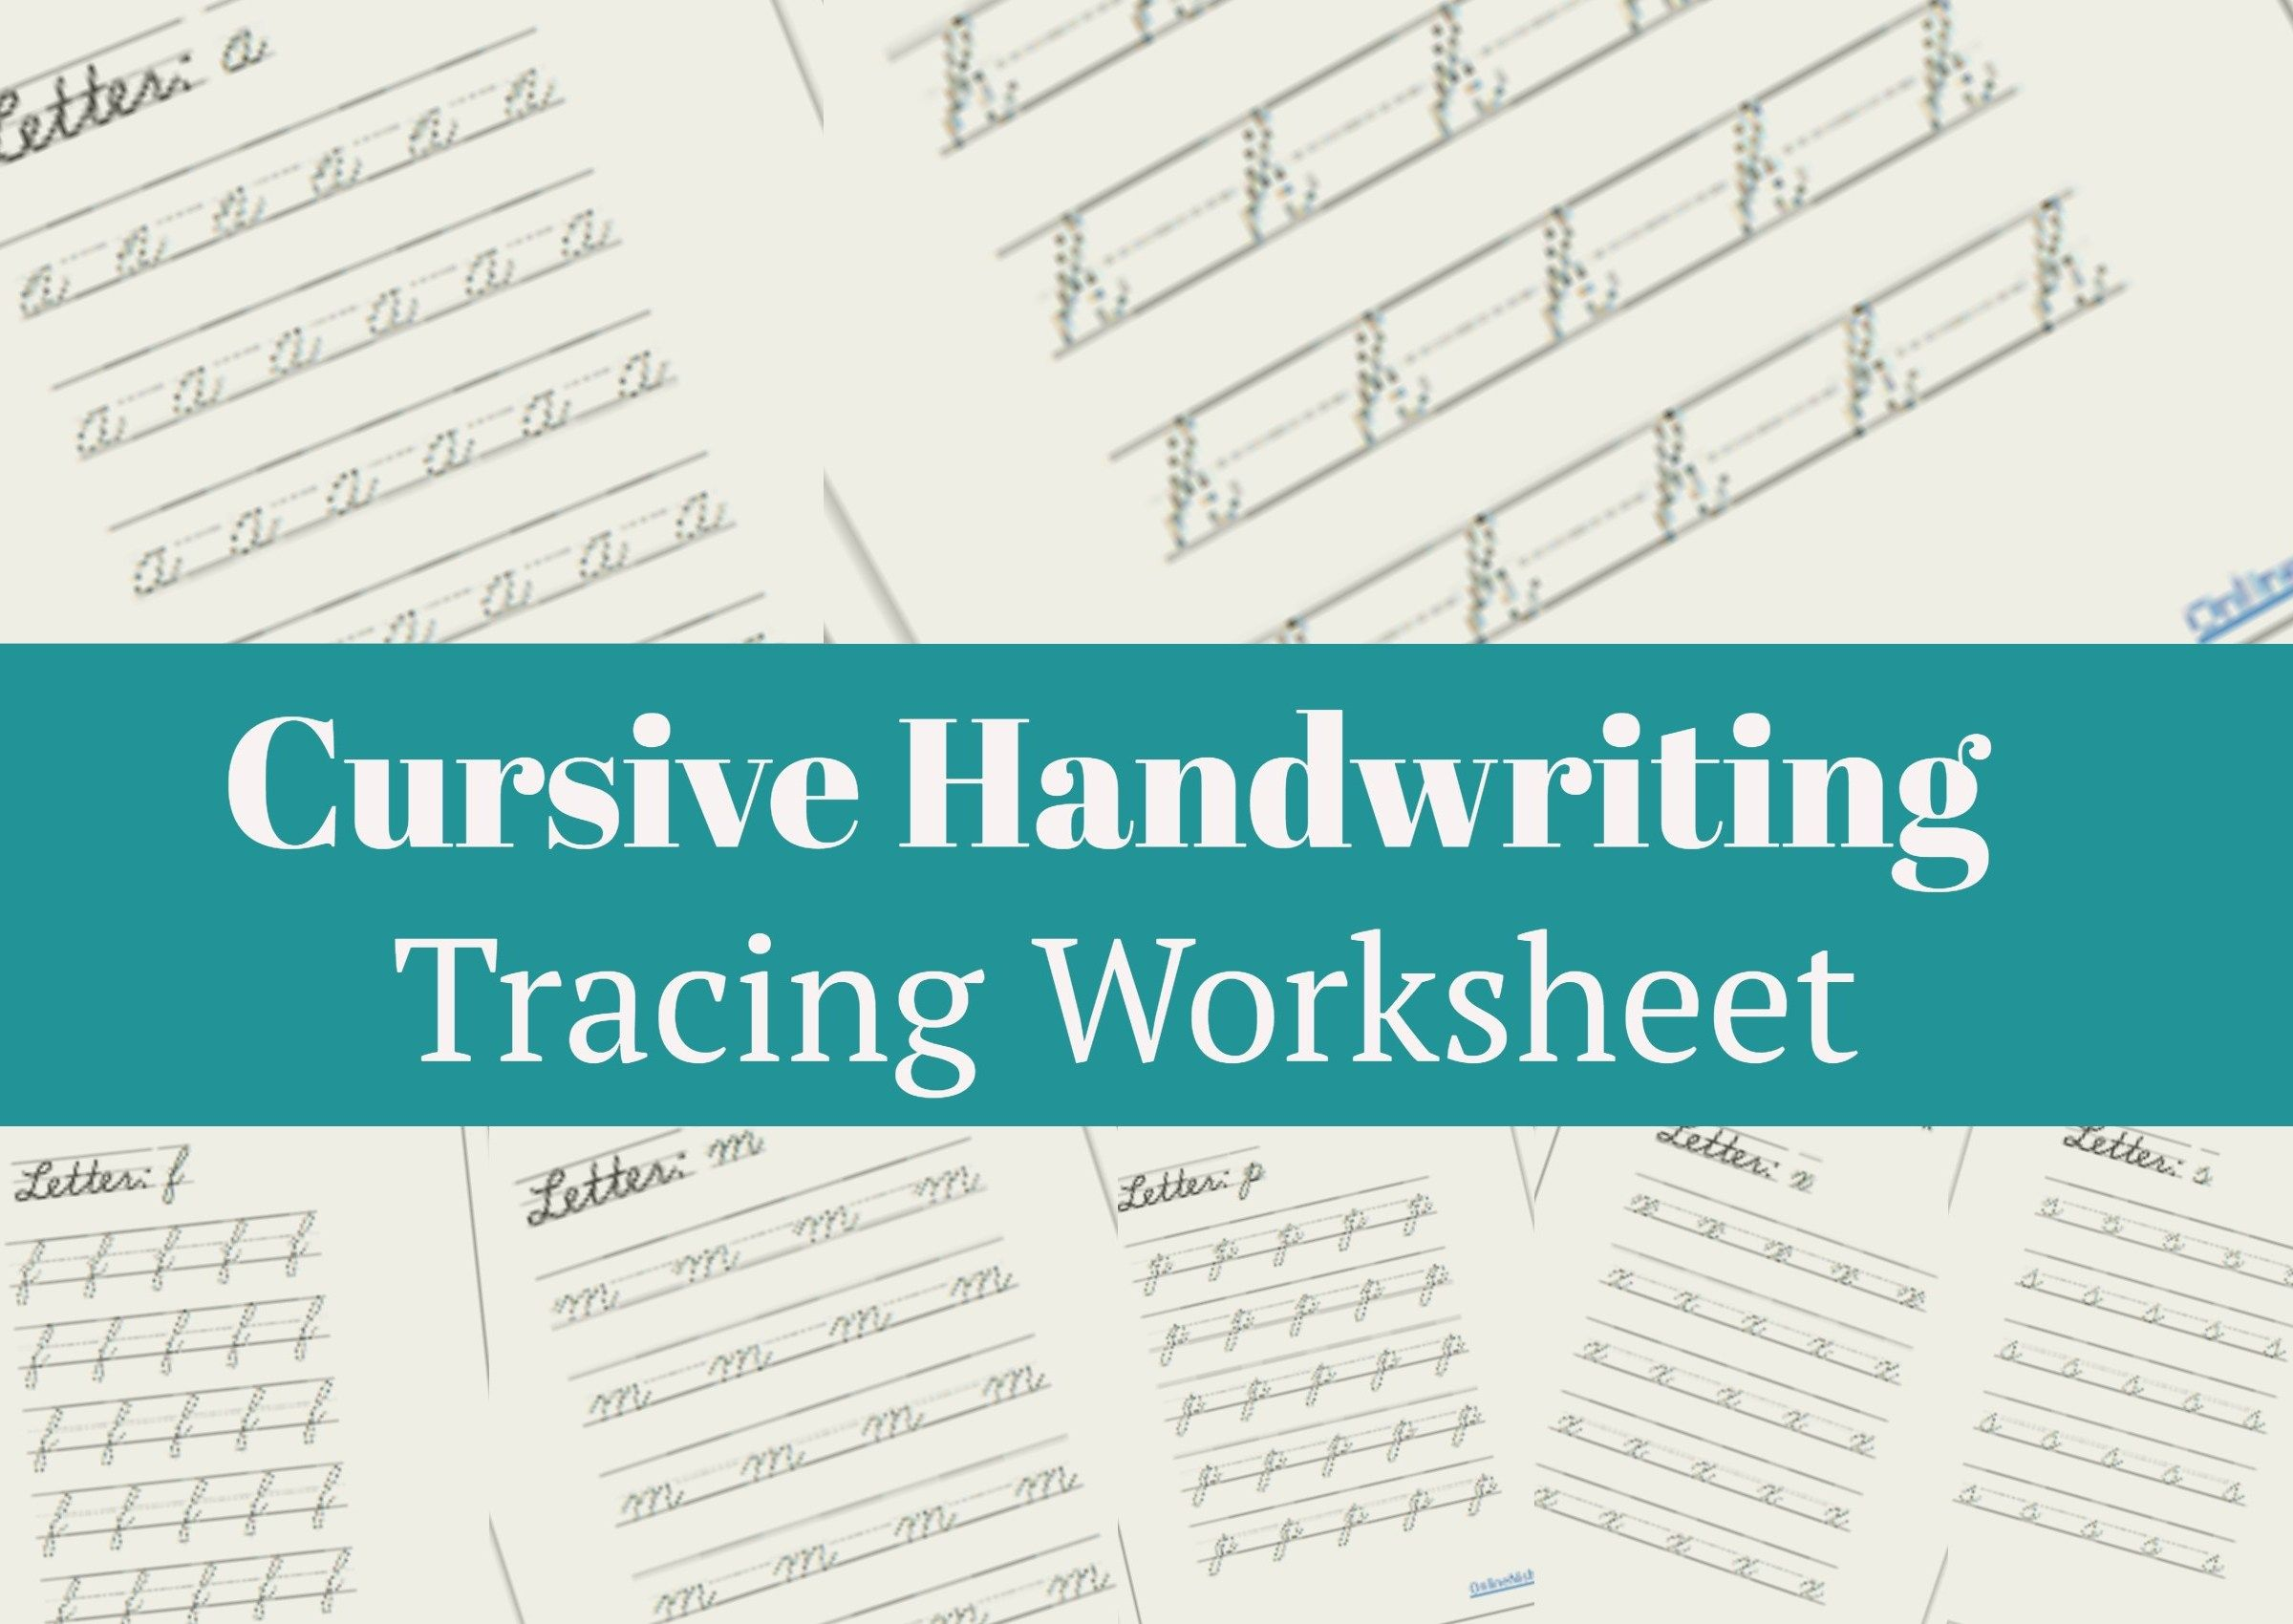 Lowercase Cursive Handwriting Worksheet Free